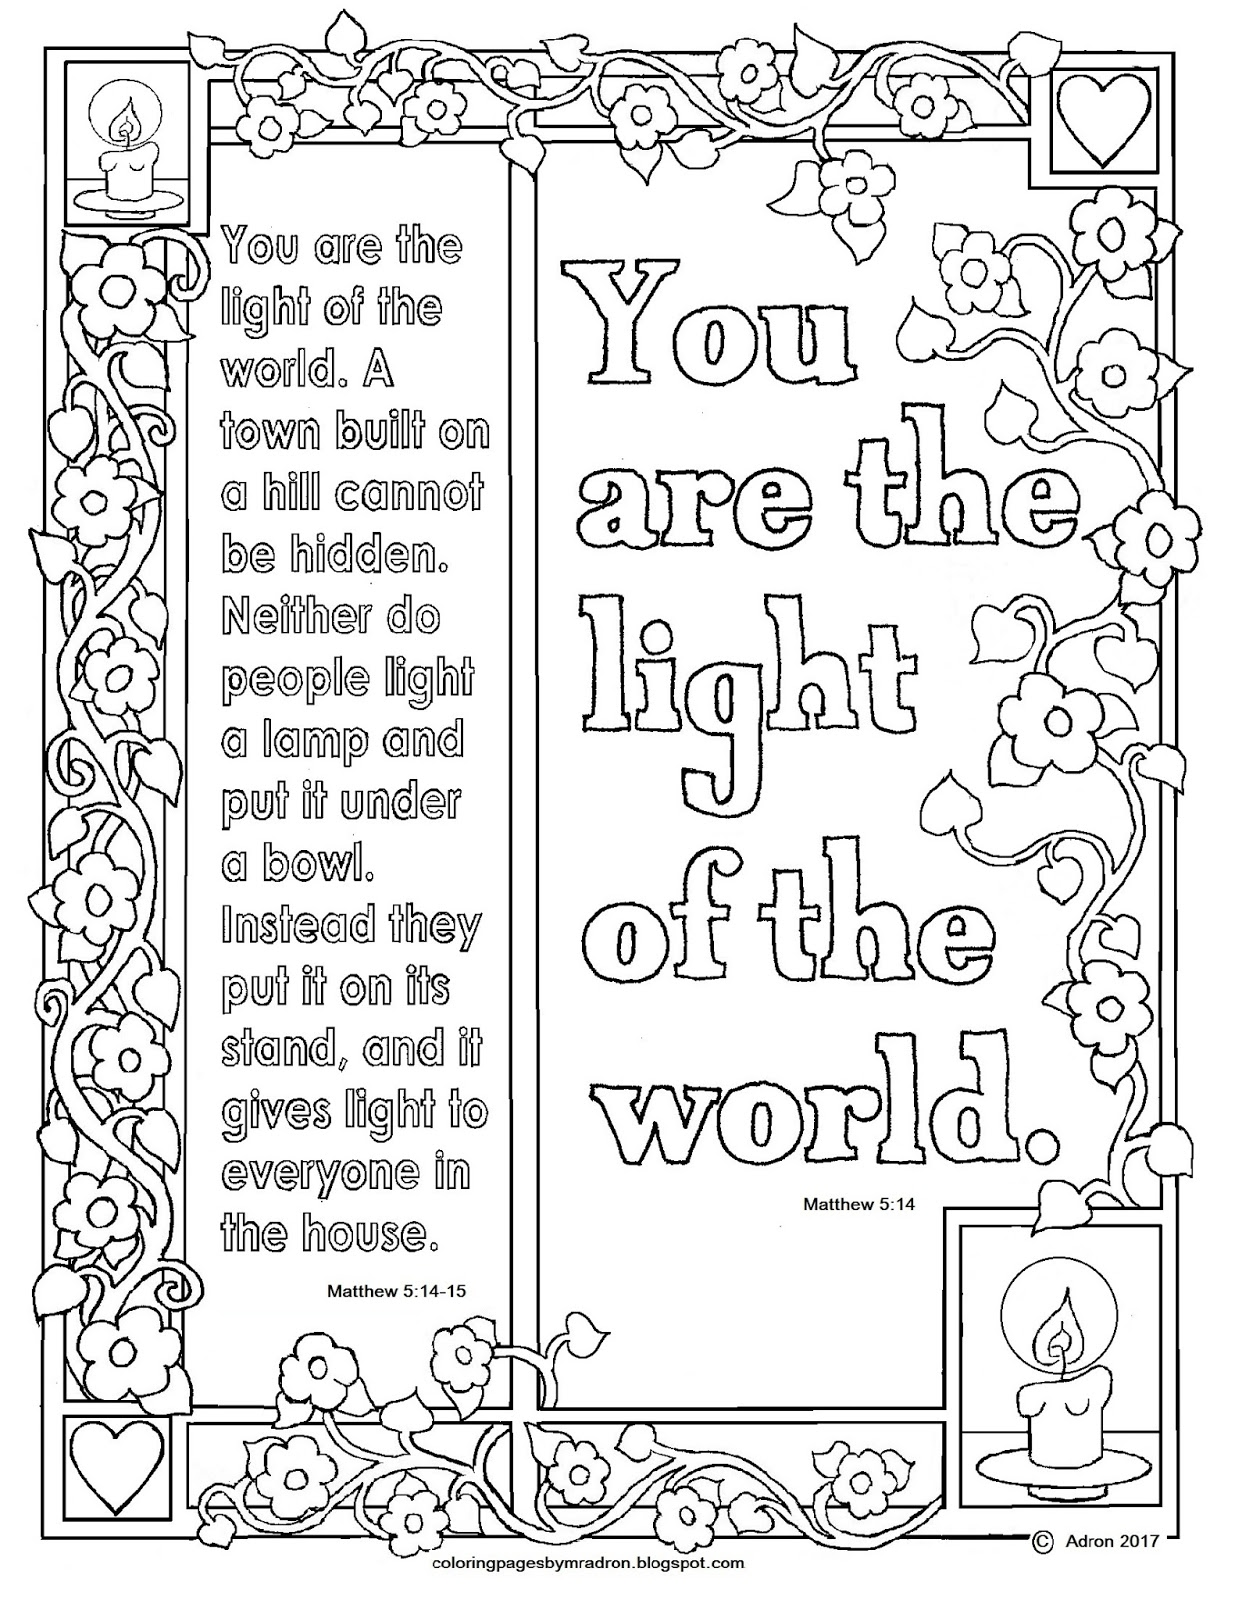 Matthew 514 15 Print And Color Page You Are The Light Of World